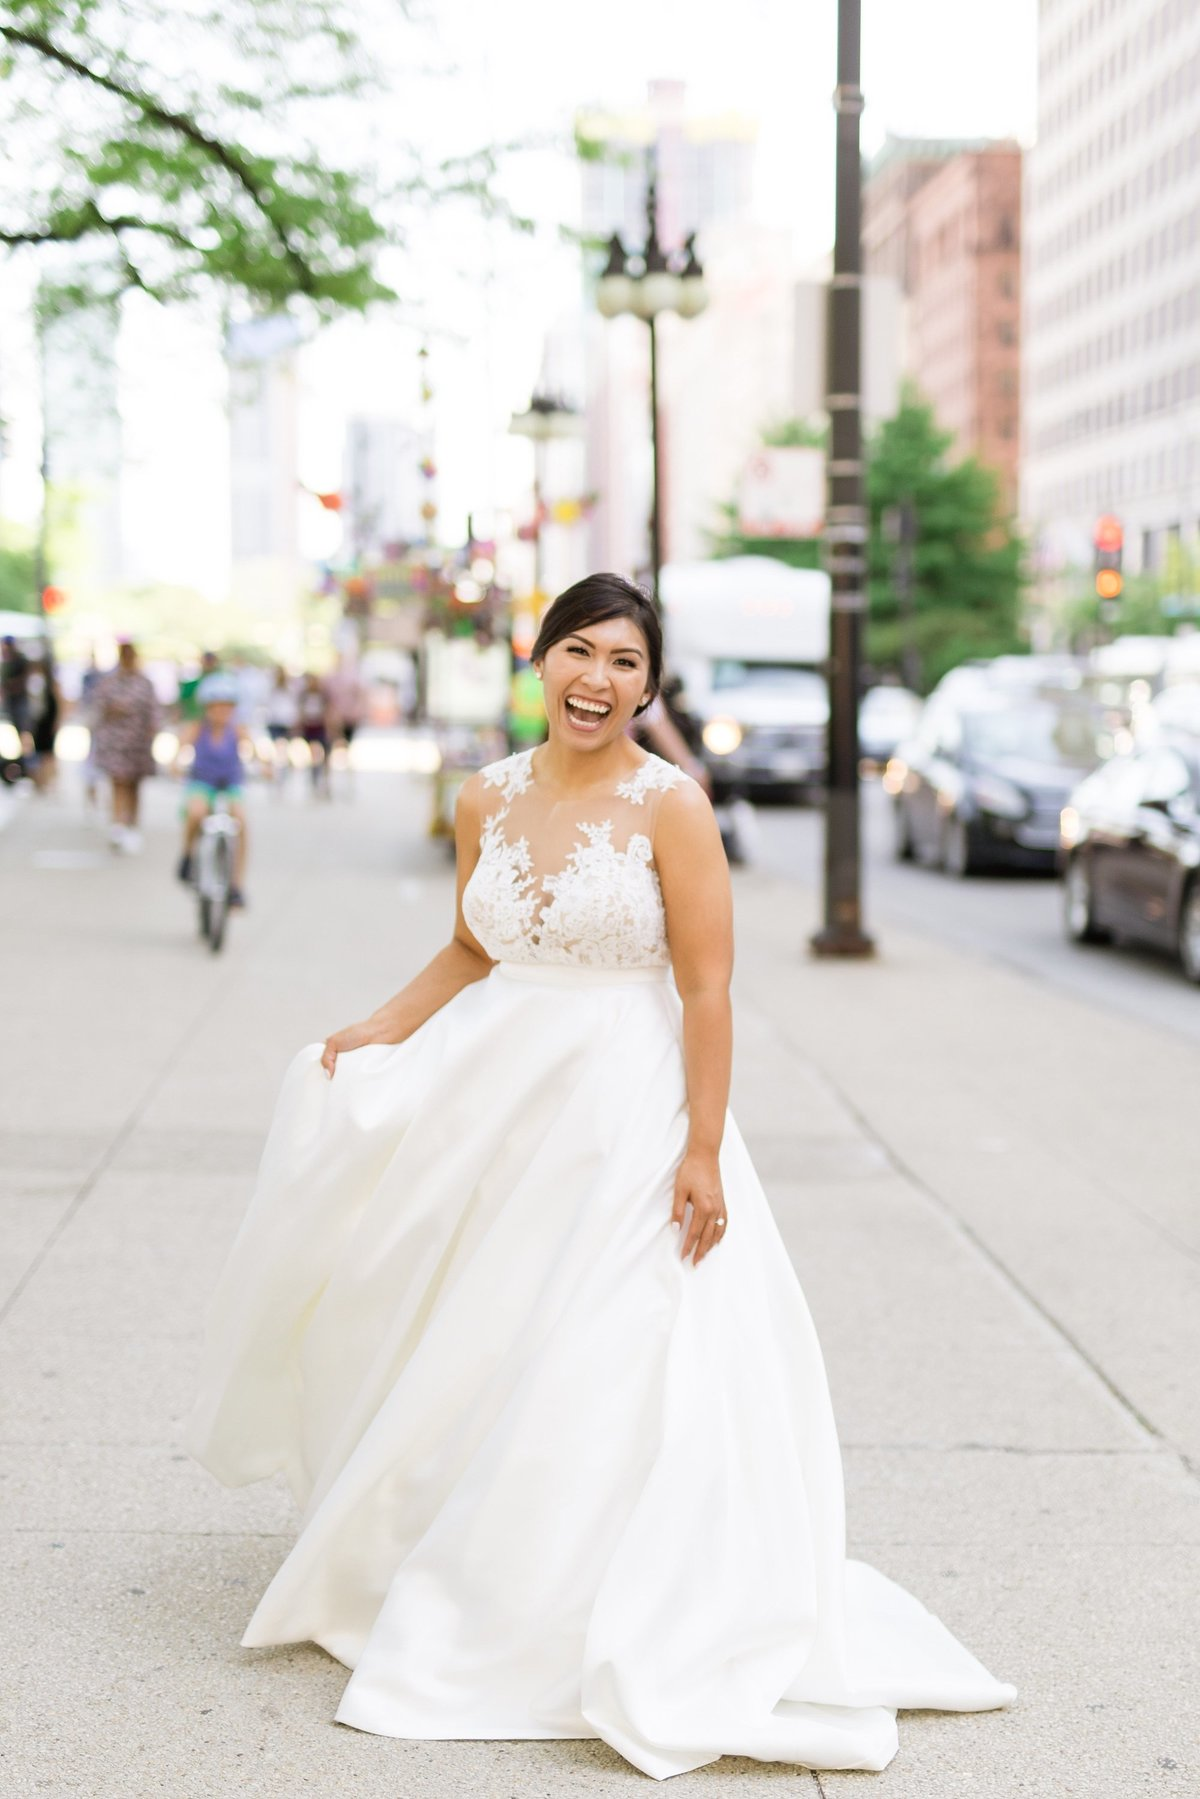 Jessica-Henry-Downtown-Chicago-Wedding-2018-Breanne-Rochelle-Photography73